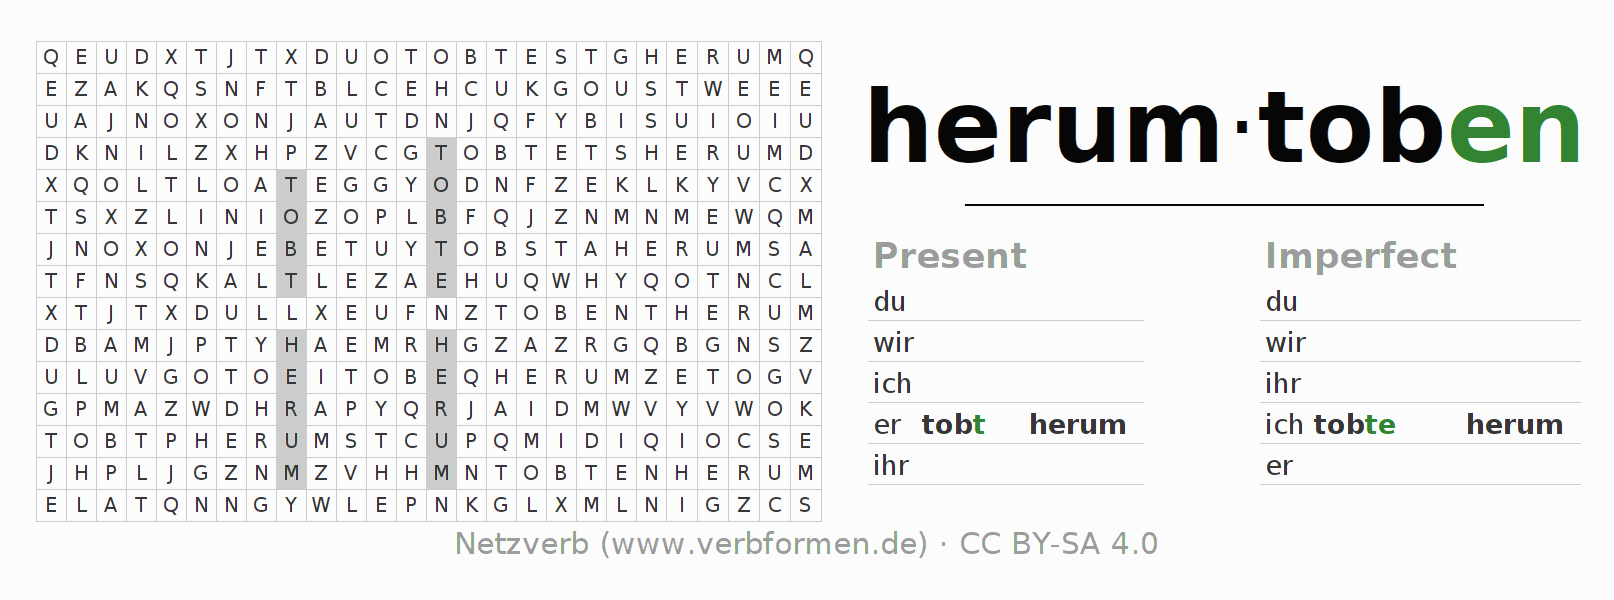 Word search puzzle for the conjugation of the verb herumtoben (ist)